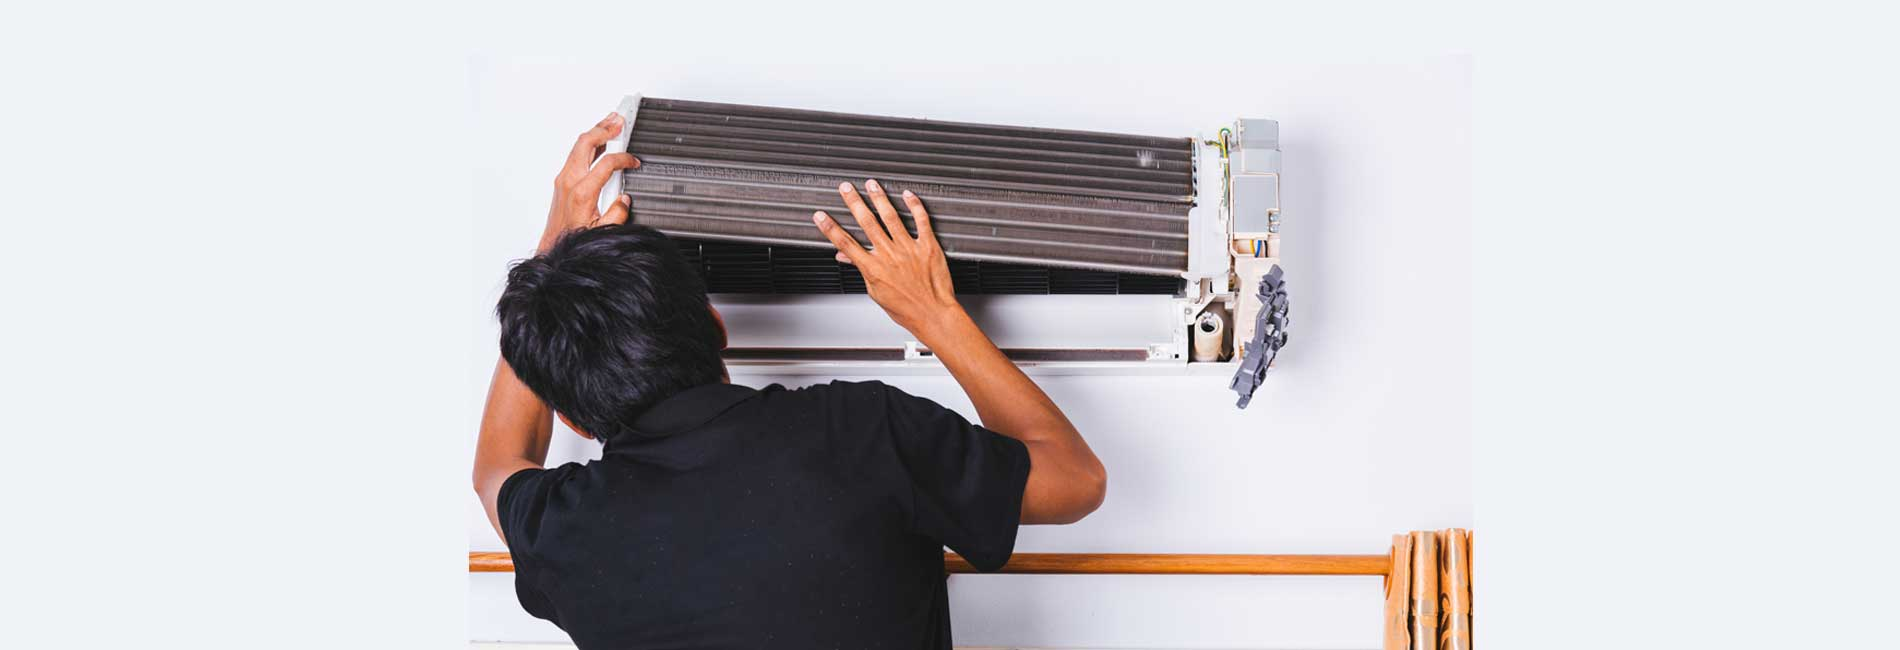 LG Split AC Uninstallation in Muttukadu